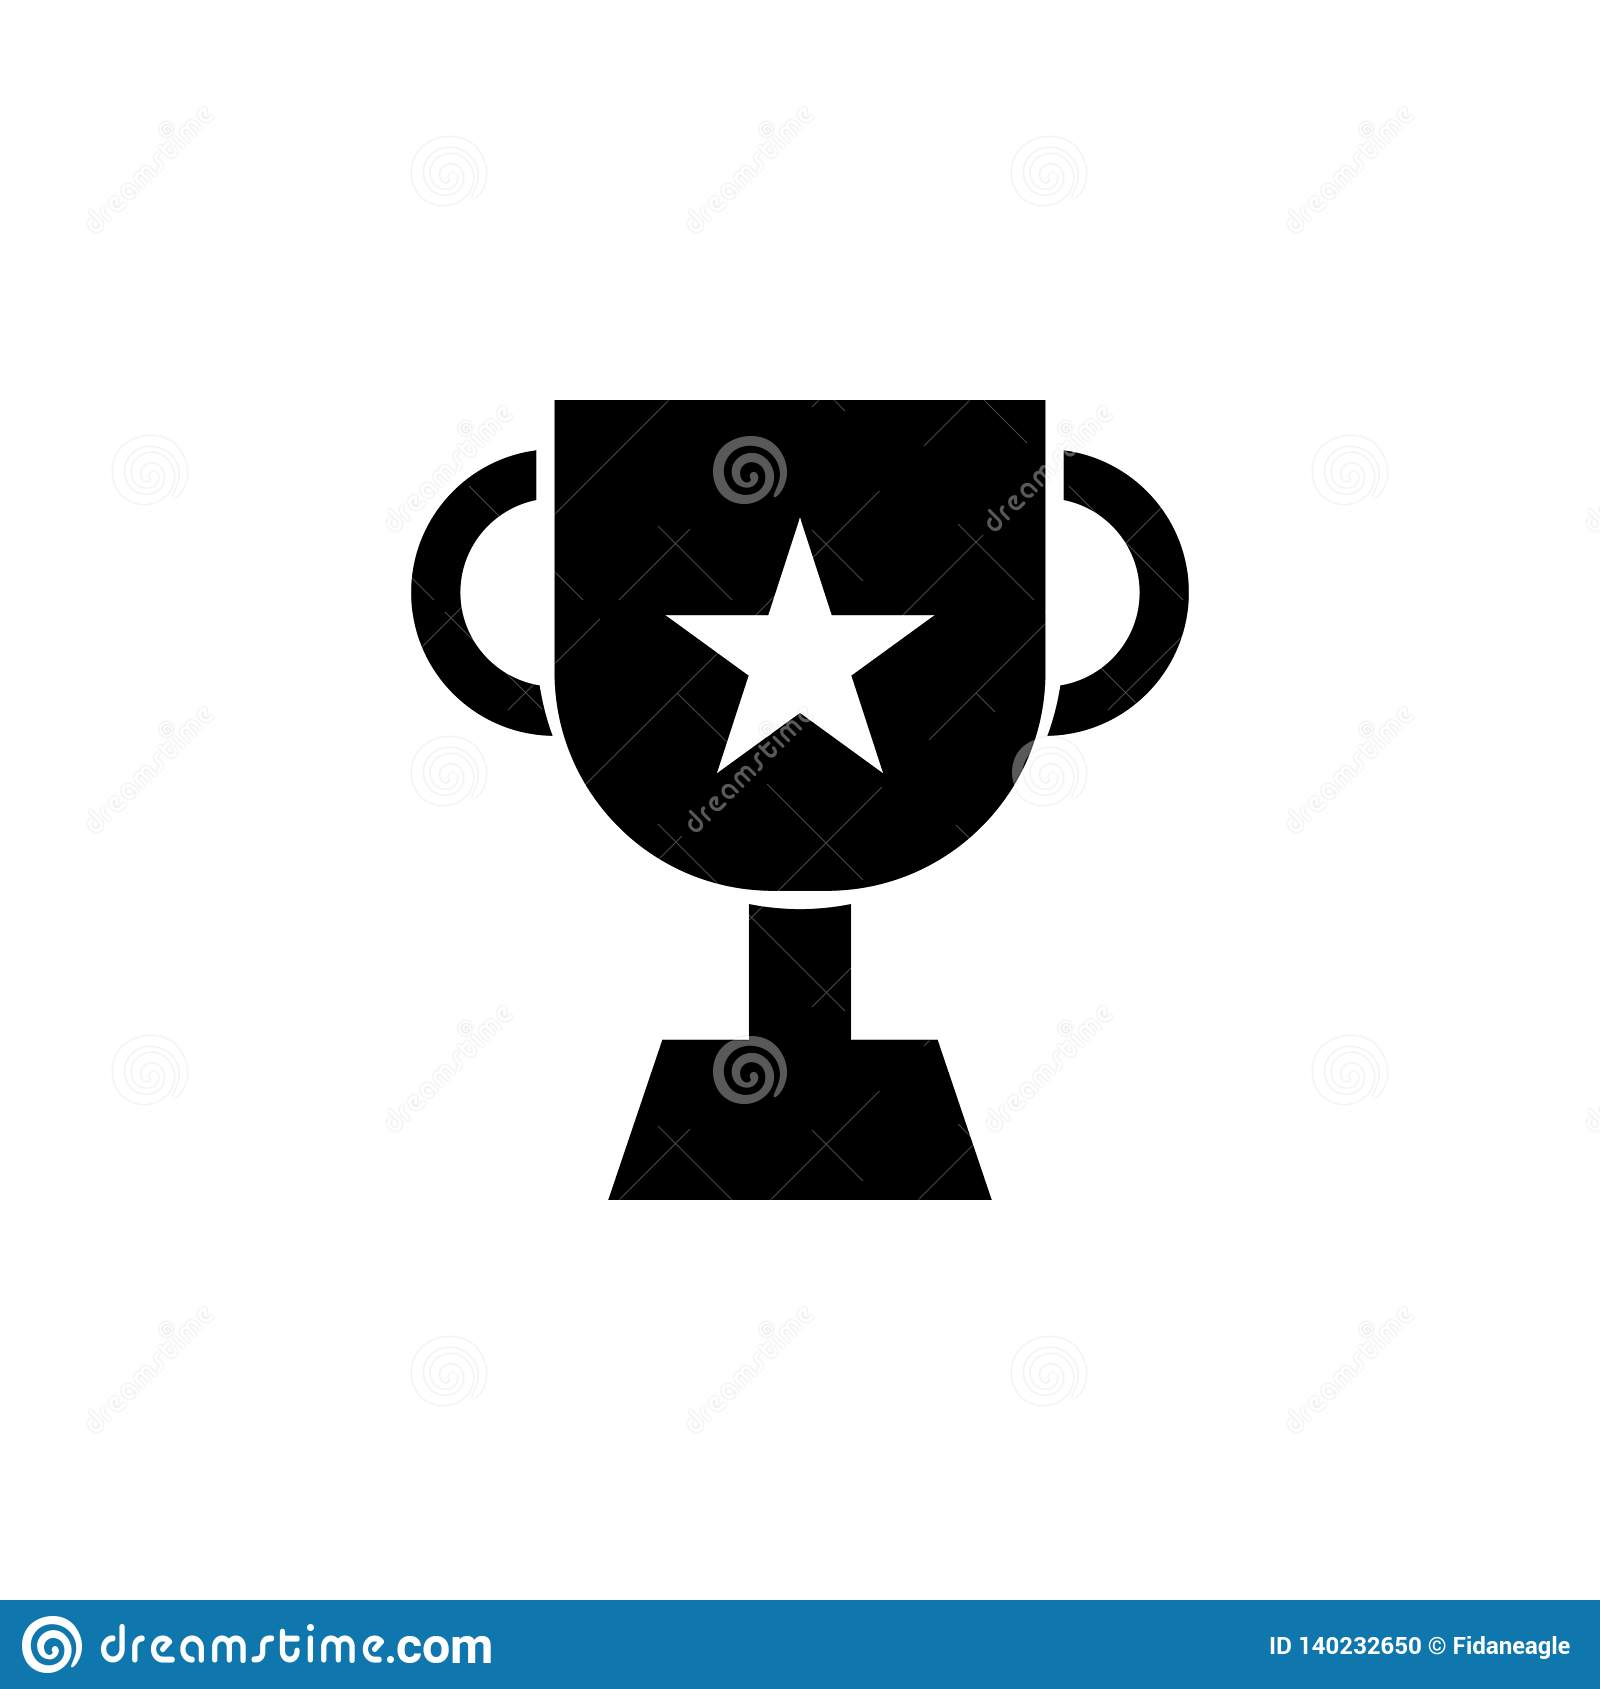 Achievement, award, prize icon. Signs and symbols can be used for web, logo, mobile app, UI, UX